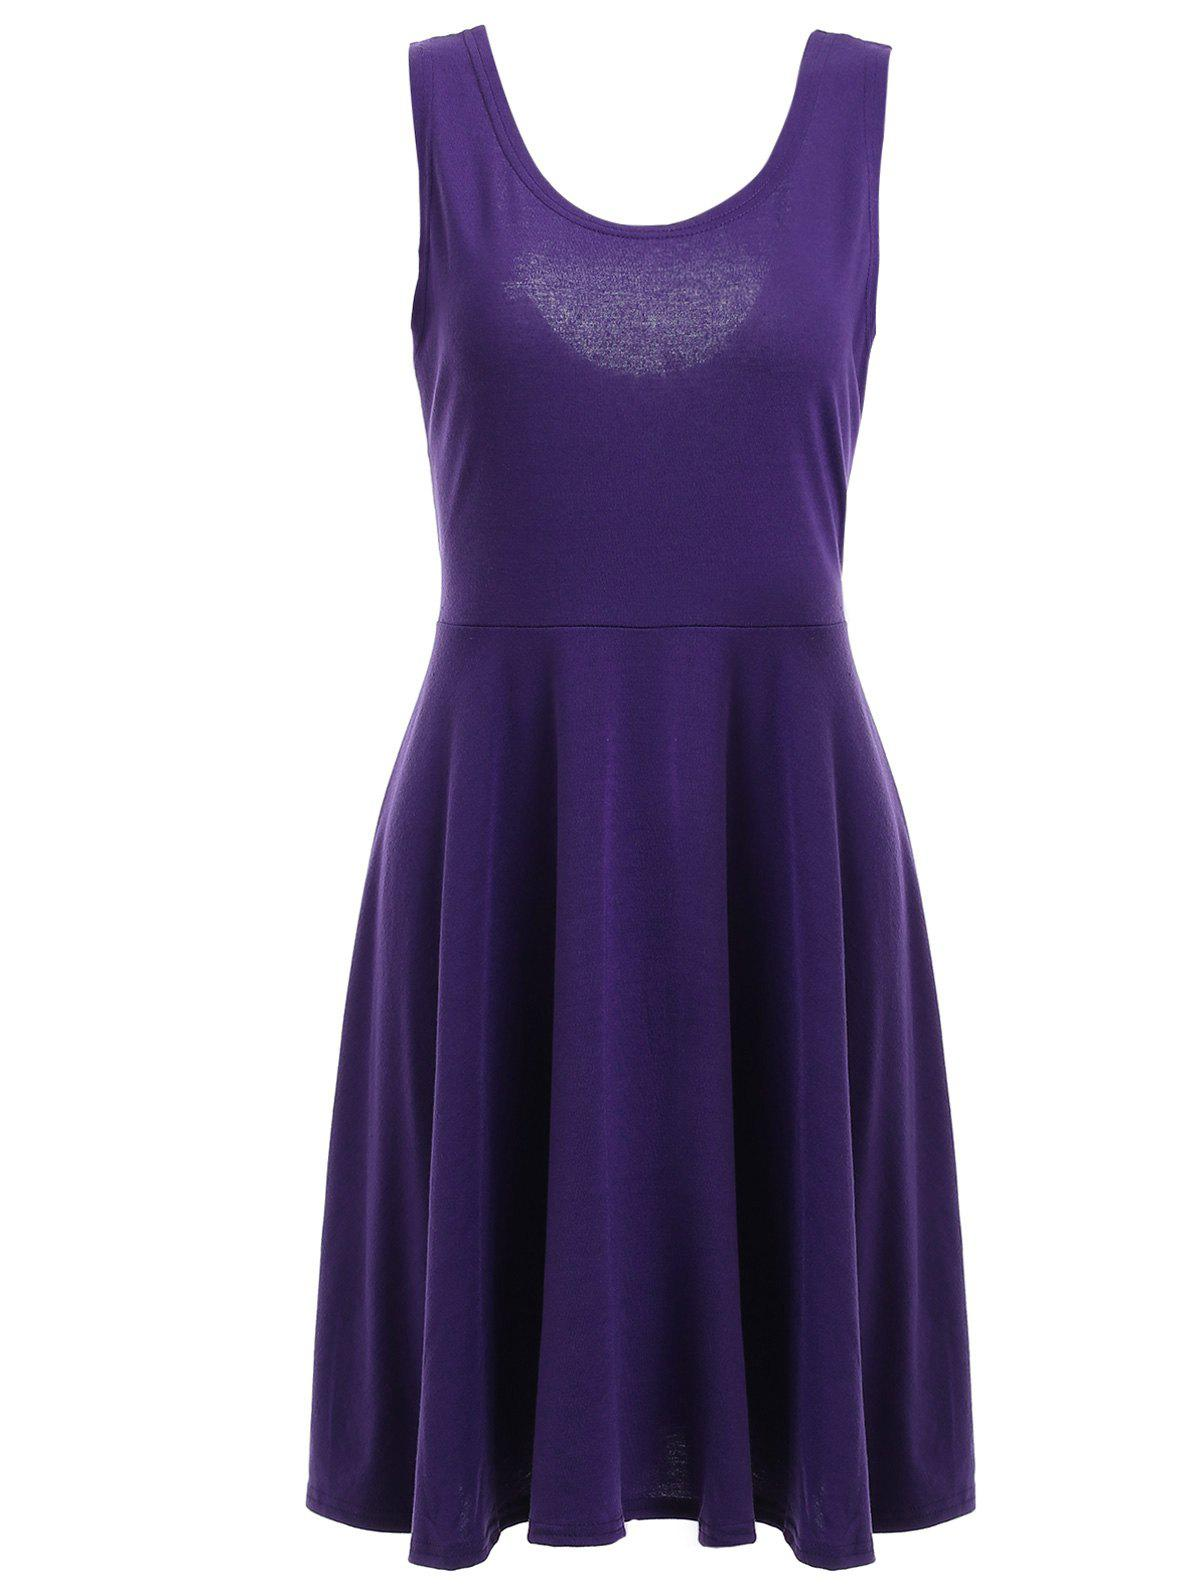 Relaxed Women's A-Line U-Neck Tank Flare Dress - PURPLE XL